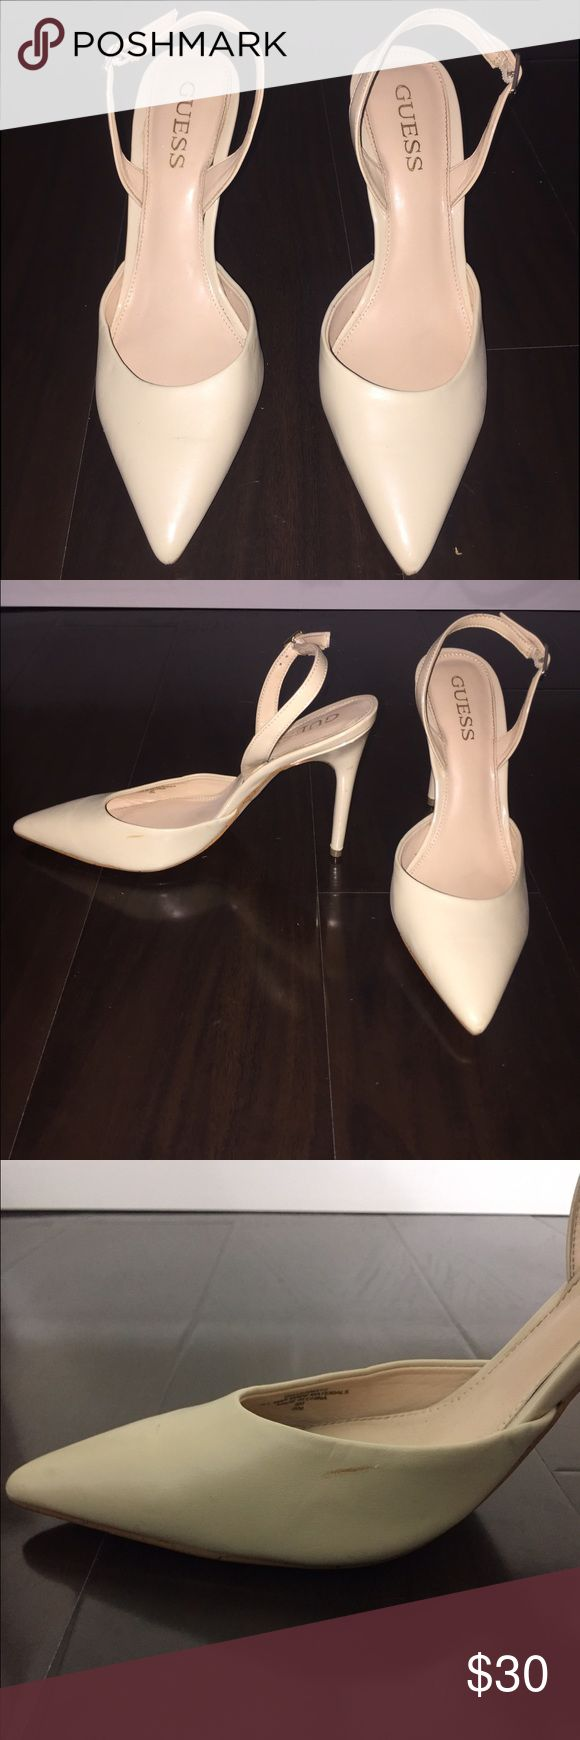 """Guess Nude Point Toe Back Strap Heels Guess Nude heels, size 8. A few scuffs as shown in photos. Worn once. Heel size approximately 4"""". Guess Shoes Heels"""